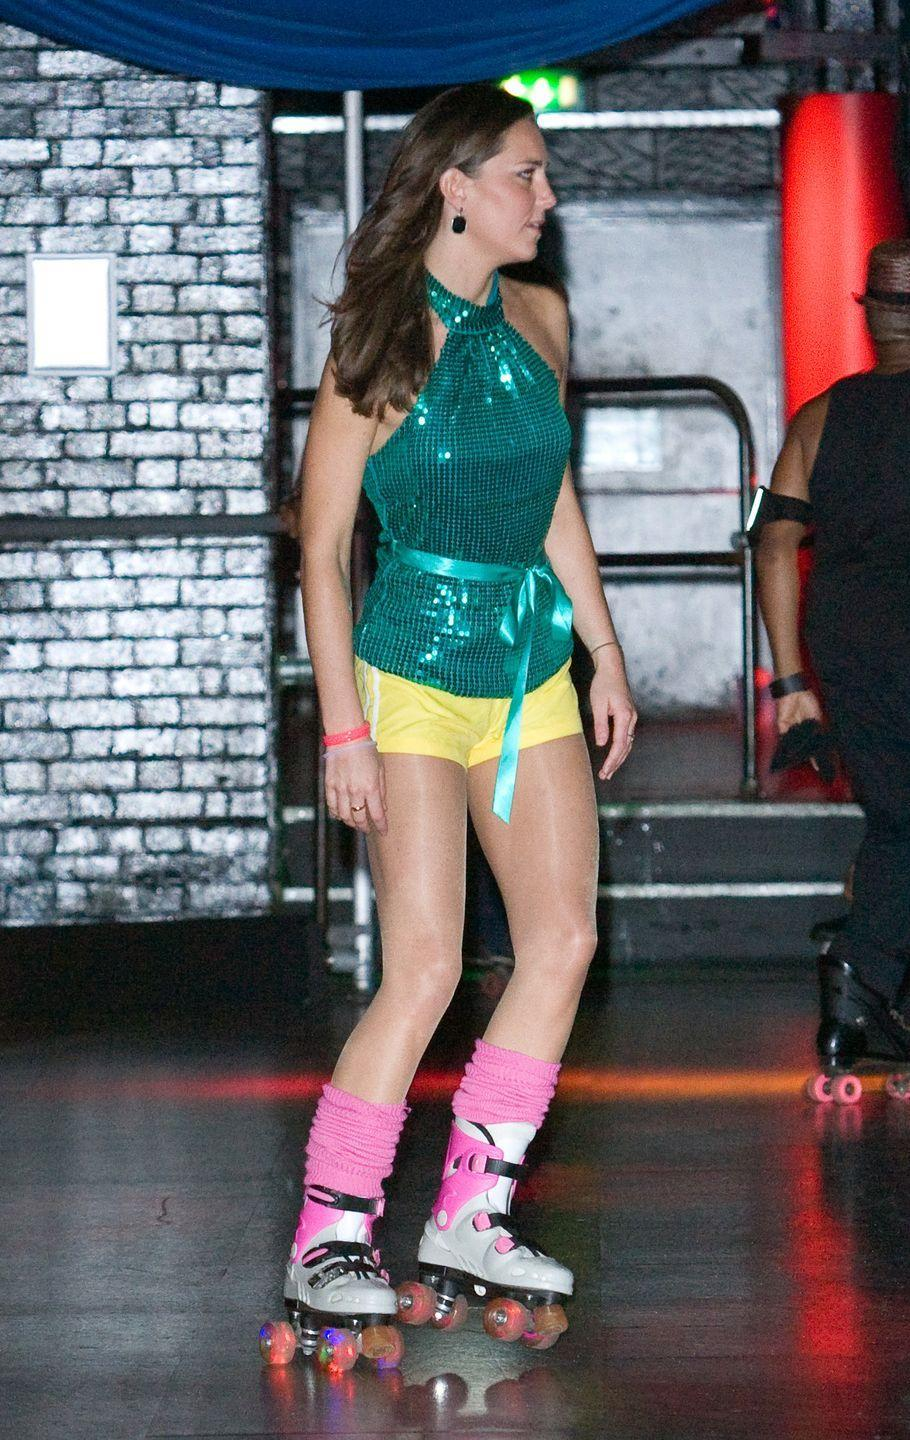 <p>Skating in a sequined halter top and yellow athletic shorts at the Day-Glo Midnight Roller Disco in South London.</p>